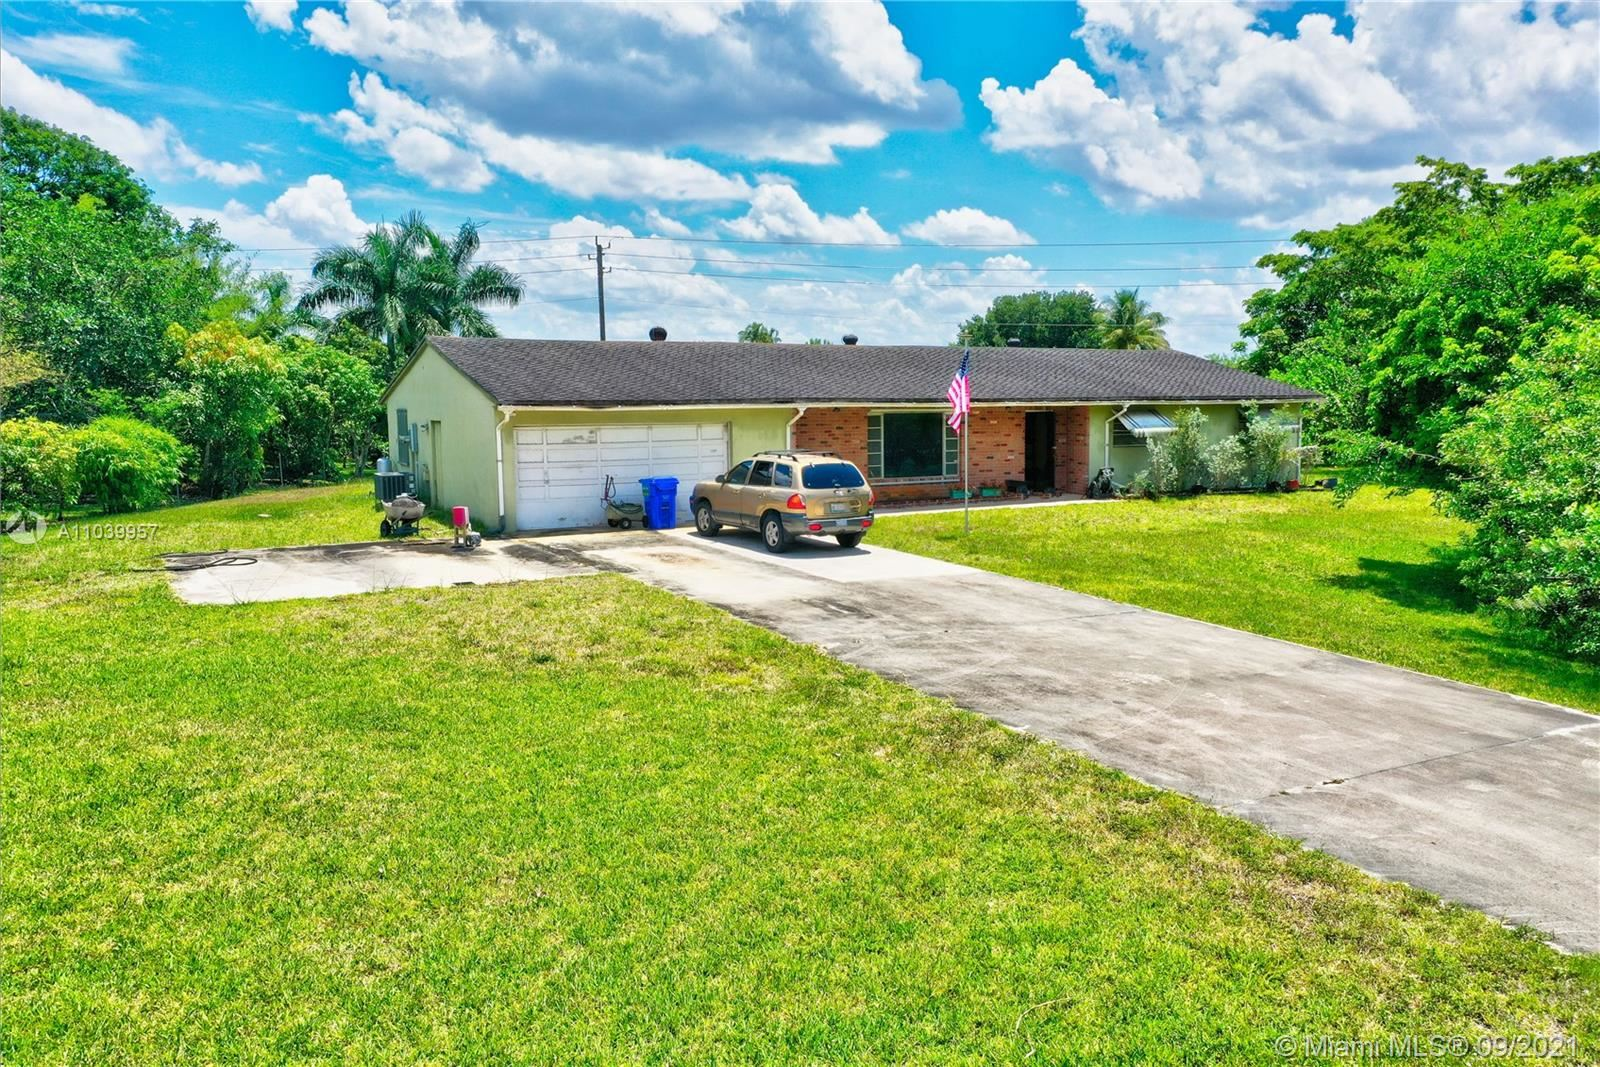 4850 SW 130th Ave, SouthWest Ranches, FL 33330 - #: A11039957